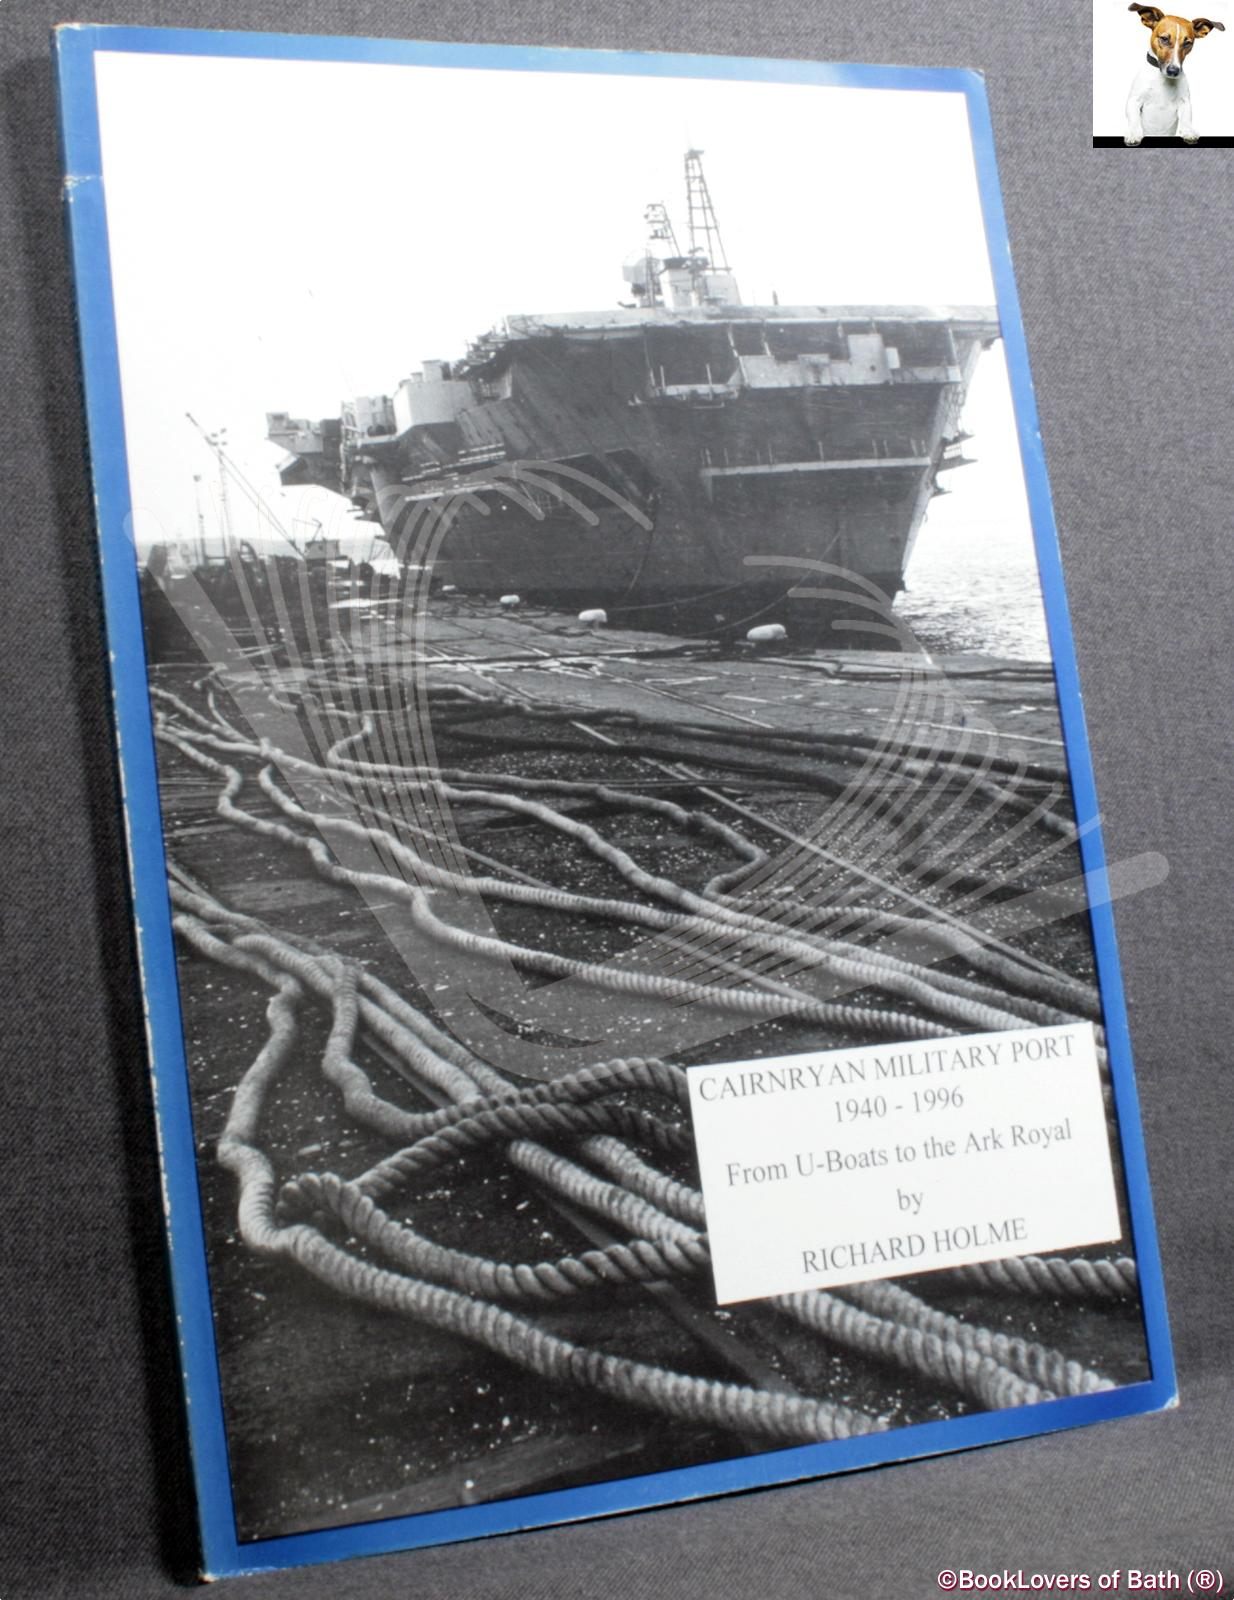 Cairnryan Military Port 1940-1996: From U-boats to the Ark Royal - Richard Holme